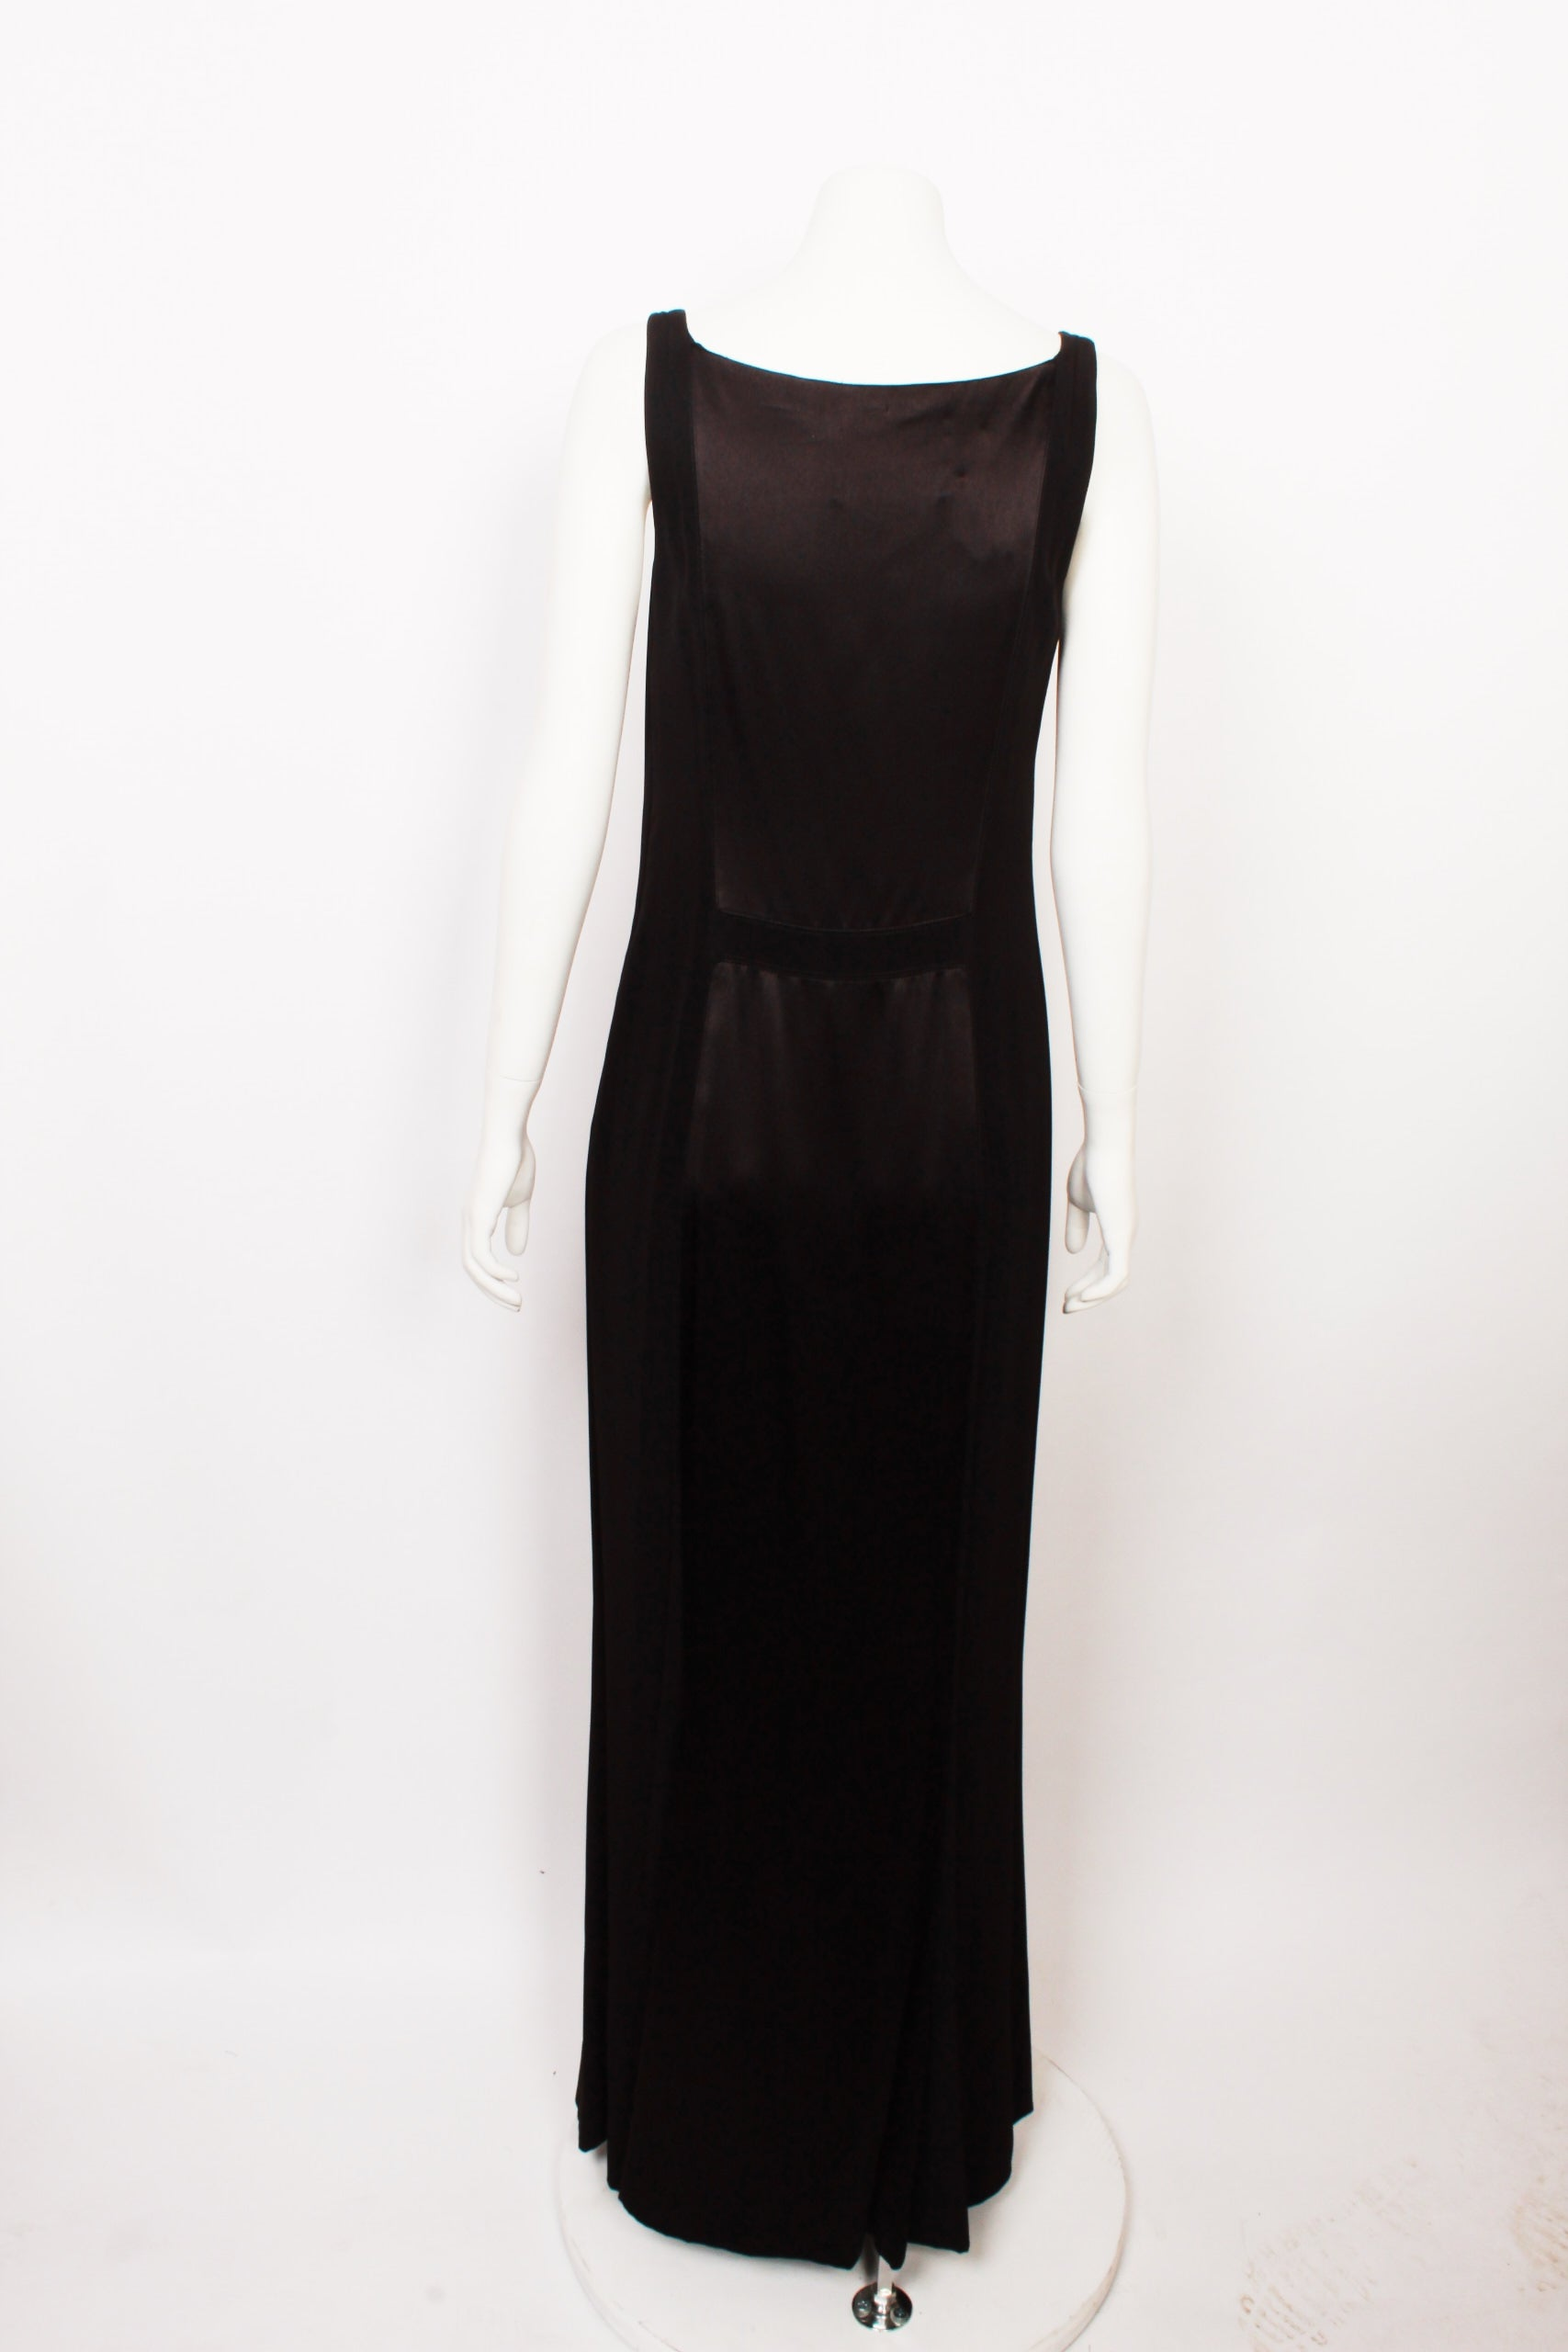 0d56751ede Vera Wang Silk Sheath Dress For Sale at 1stdibs